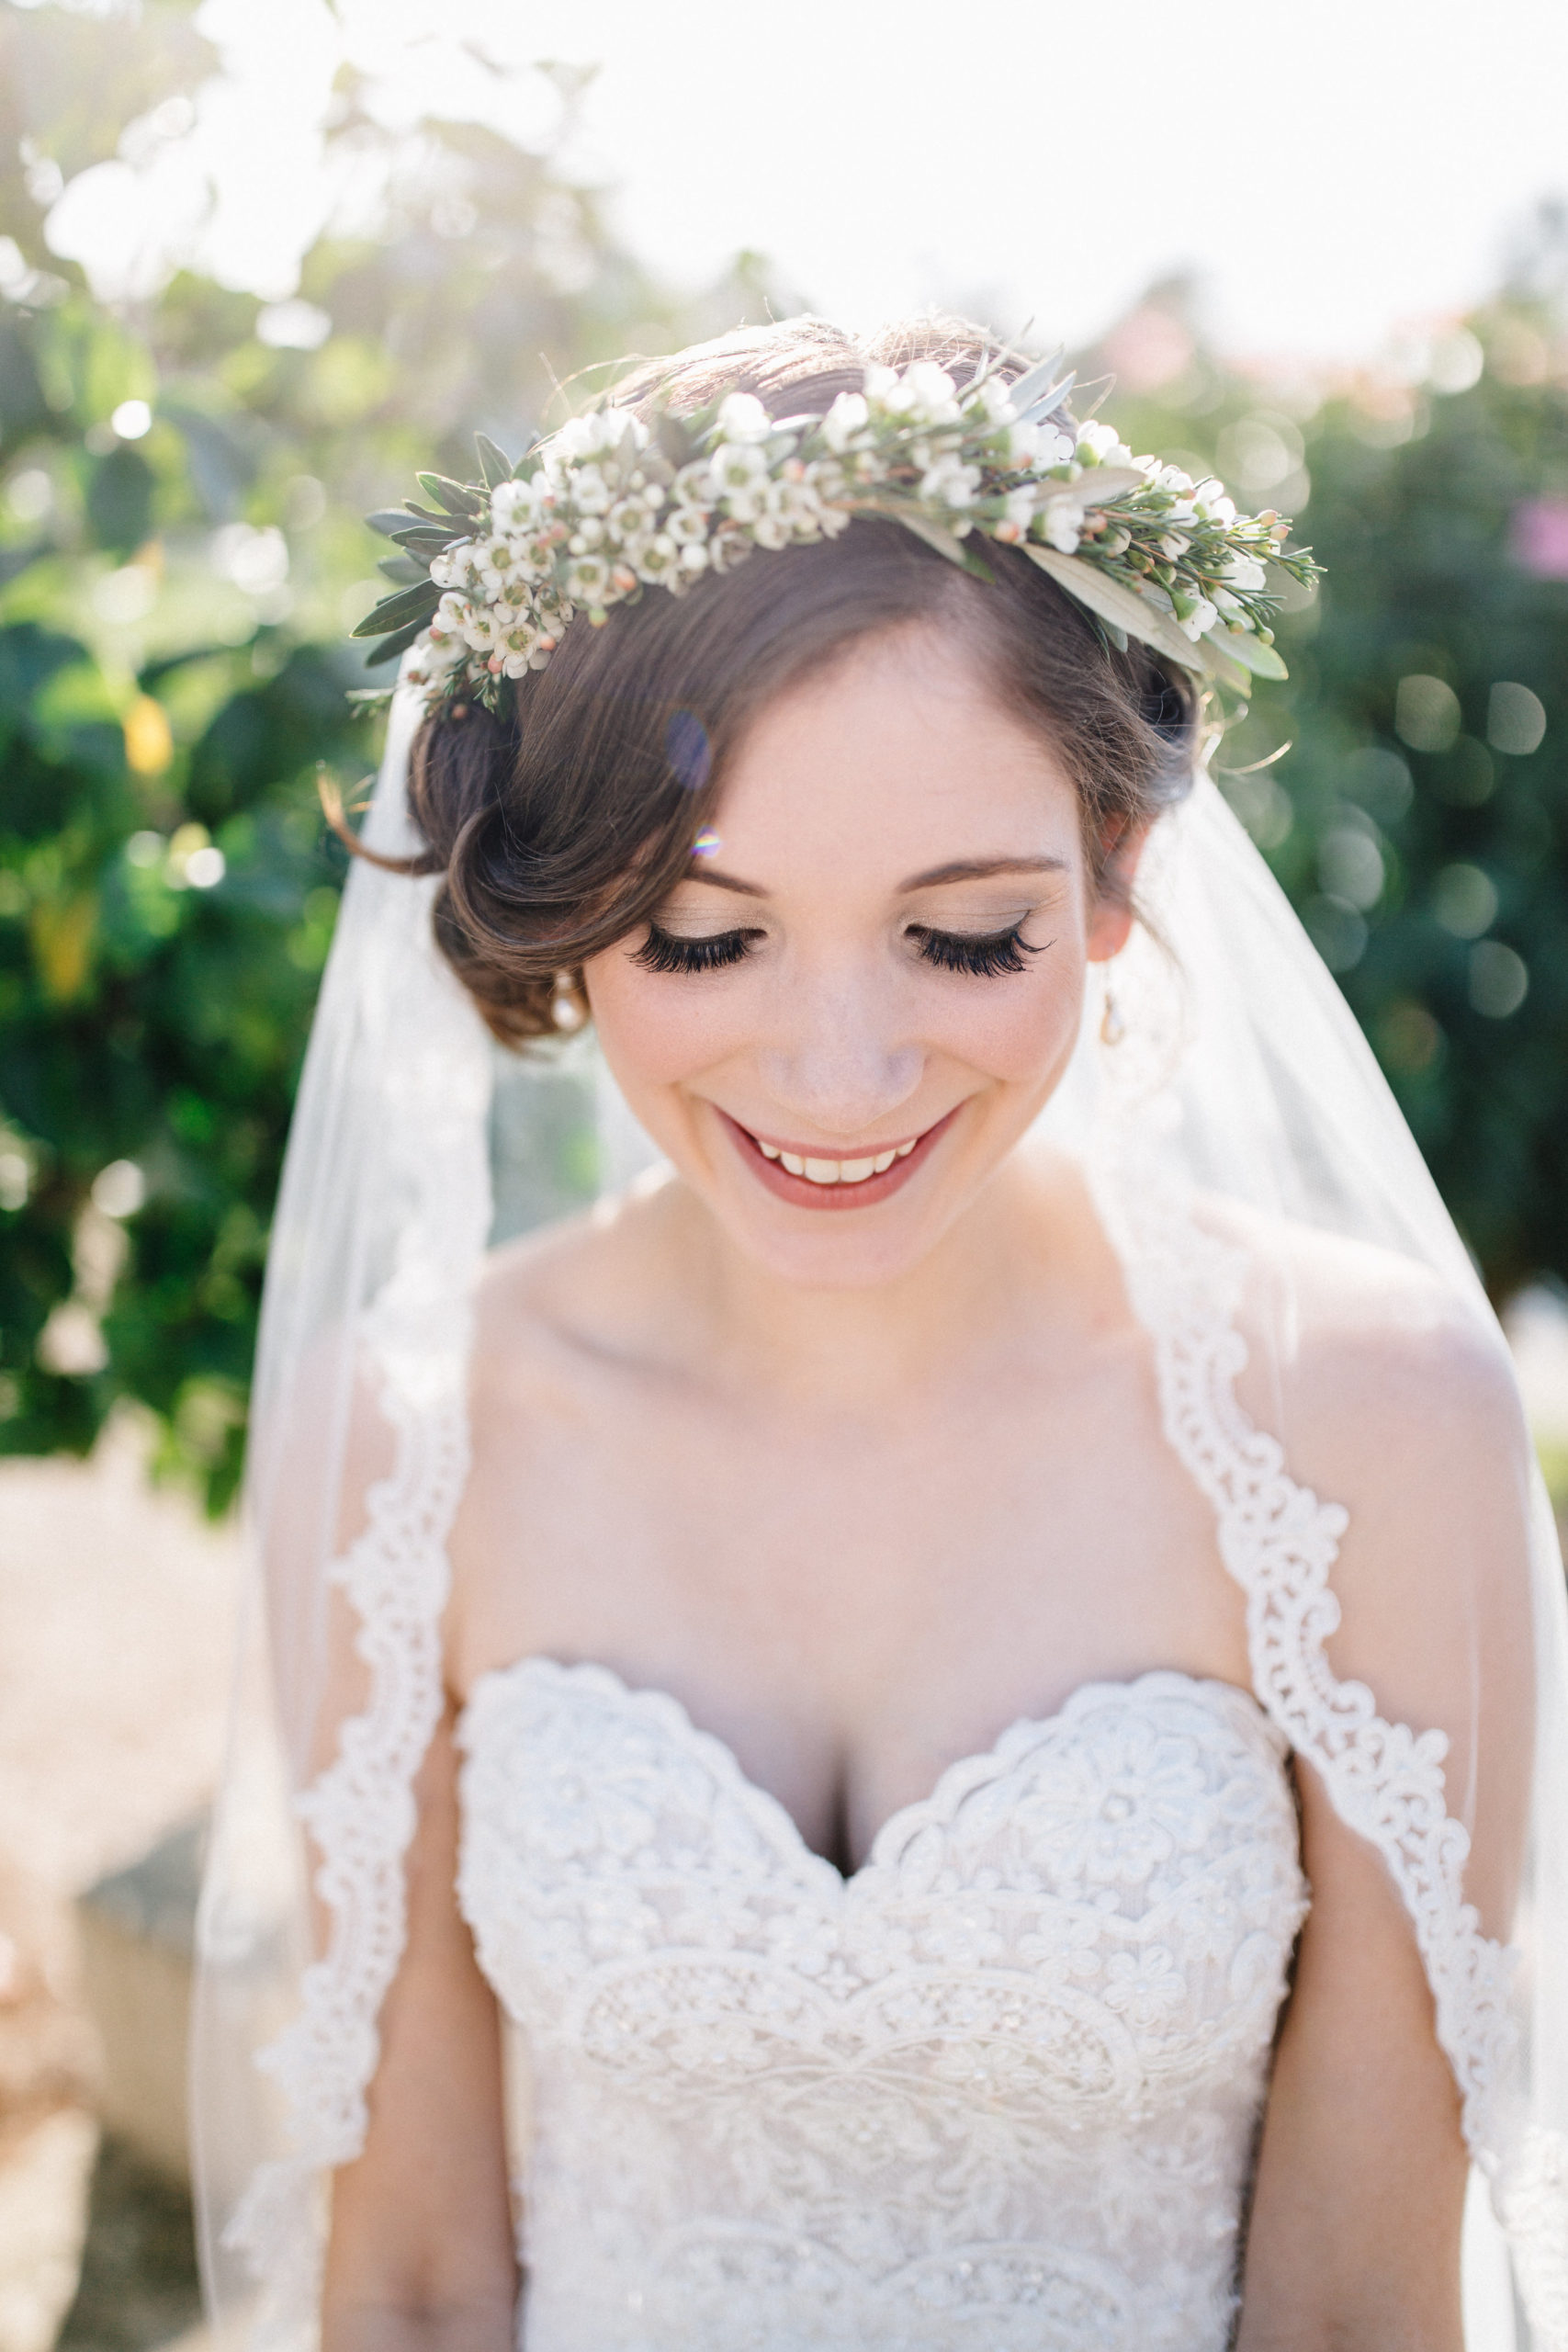 Bride in wedding dress with vintage hair style